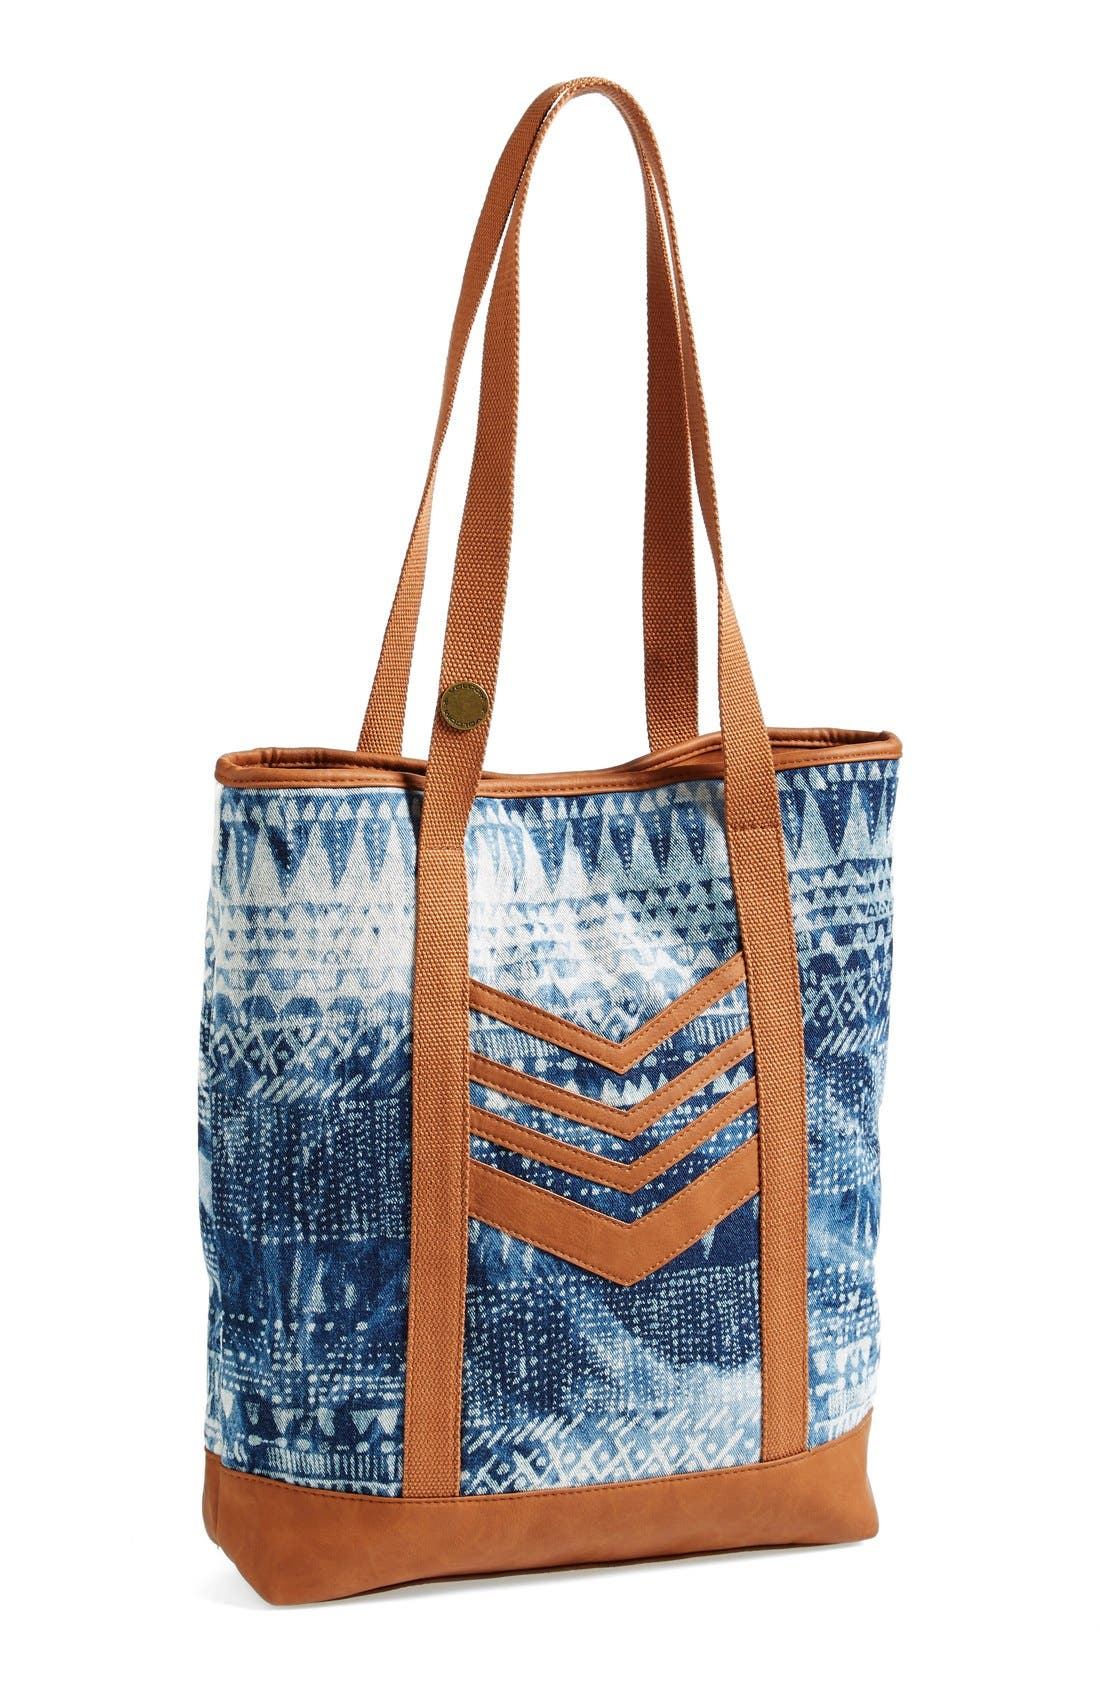 VOLCOM 'Thrifty Fun' Bleach Pattern Tote, Main, color, 200